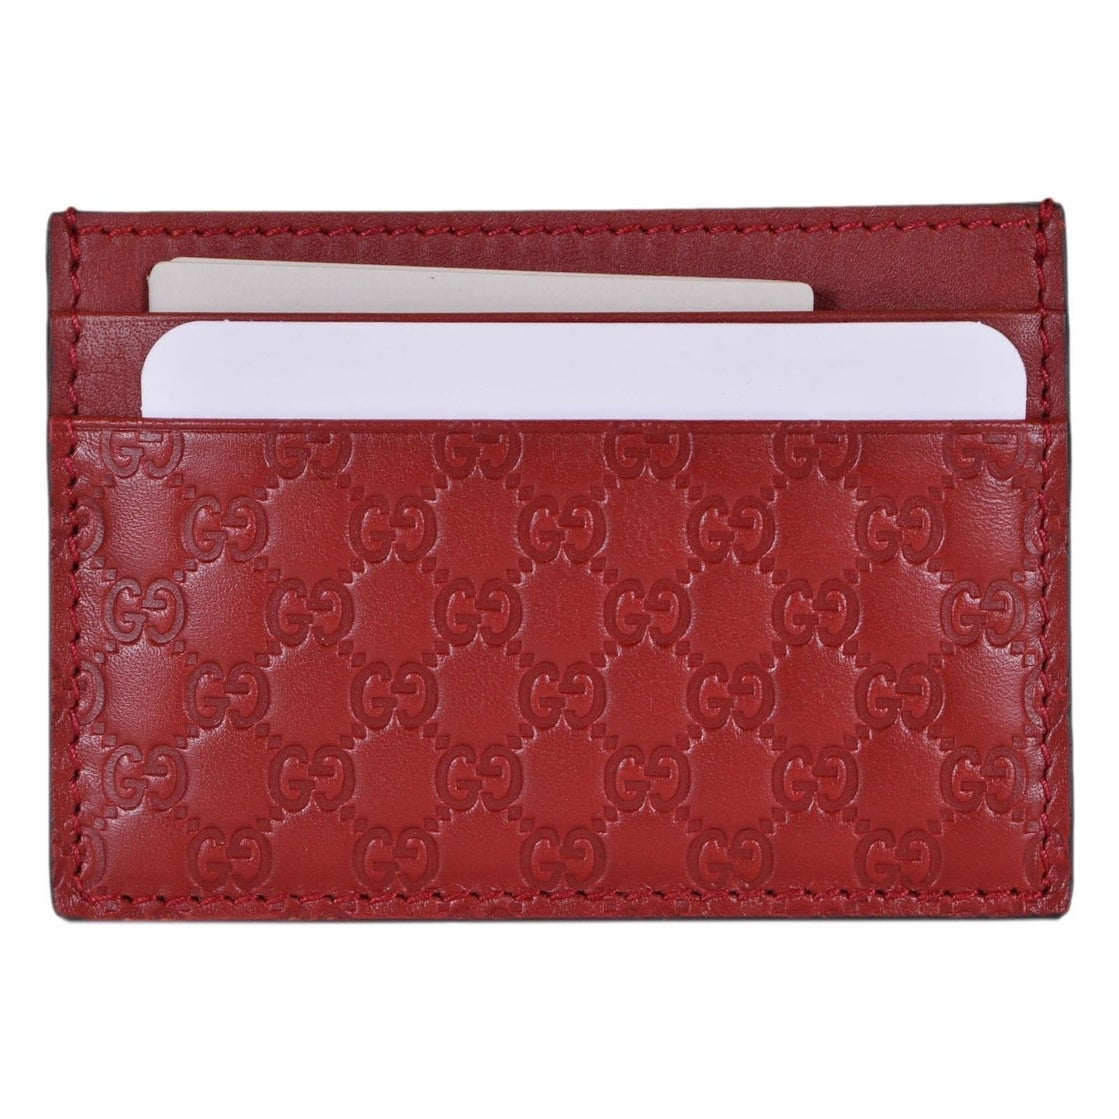 d2bfcf1eed50 Shop Gucci 476010 Red Leather Micro GG Guccissima Small Card Case - 4